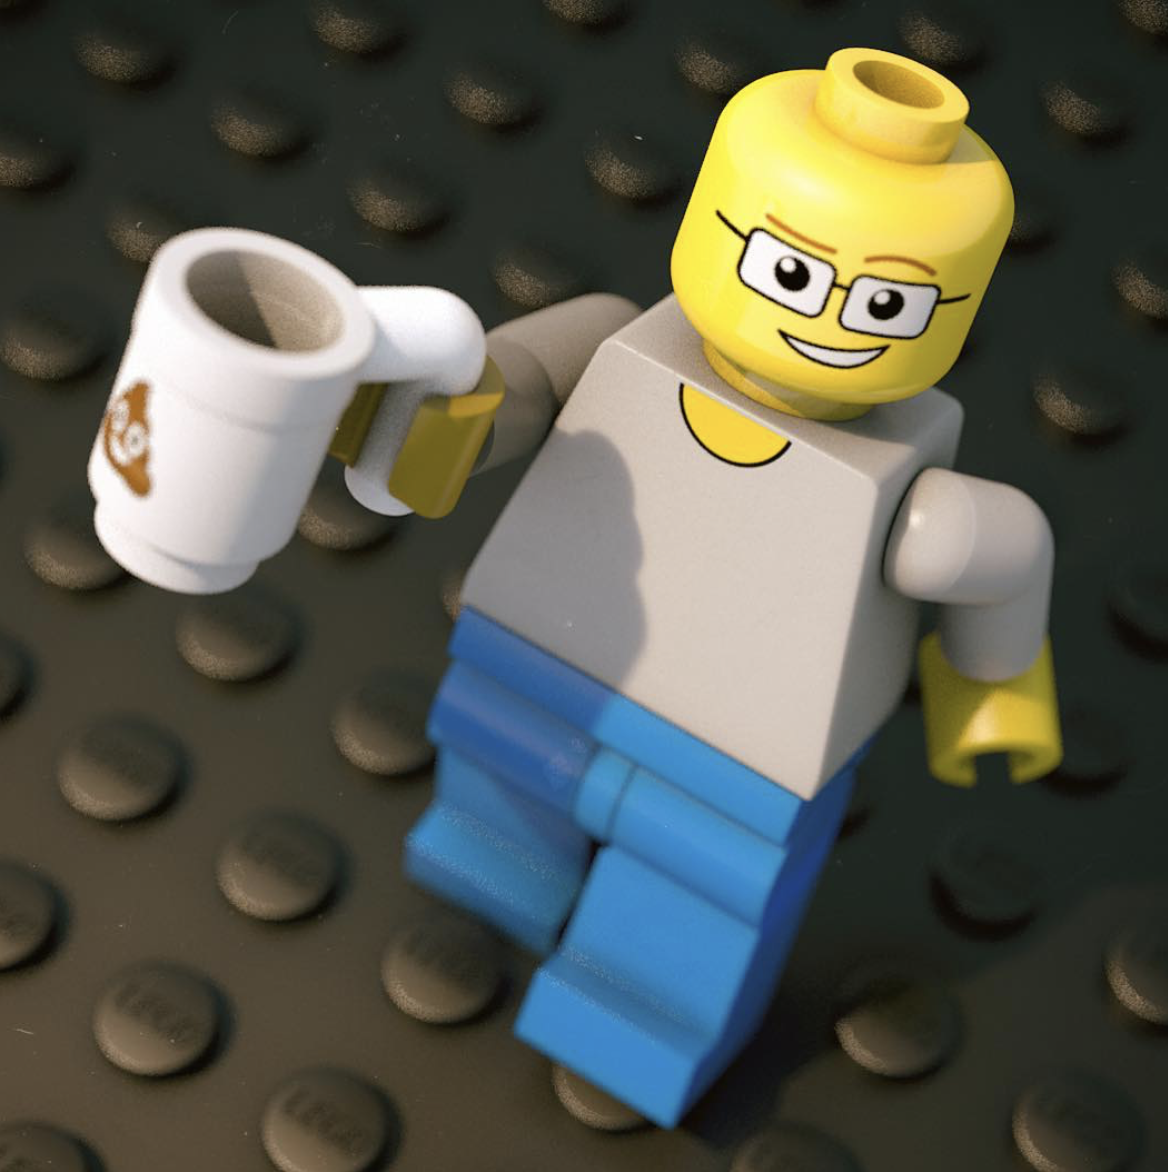 Me, as a Lego Minifigure